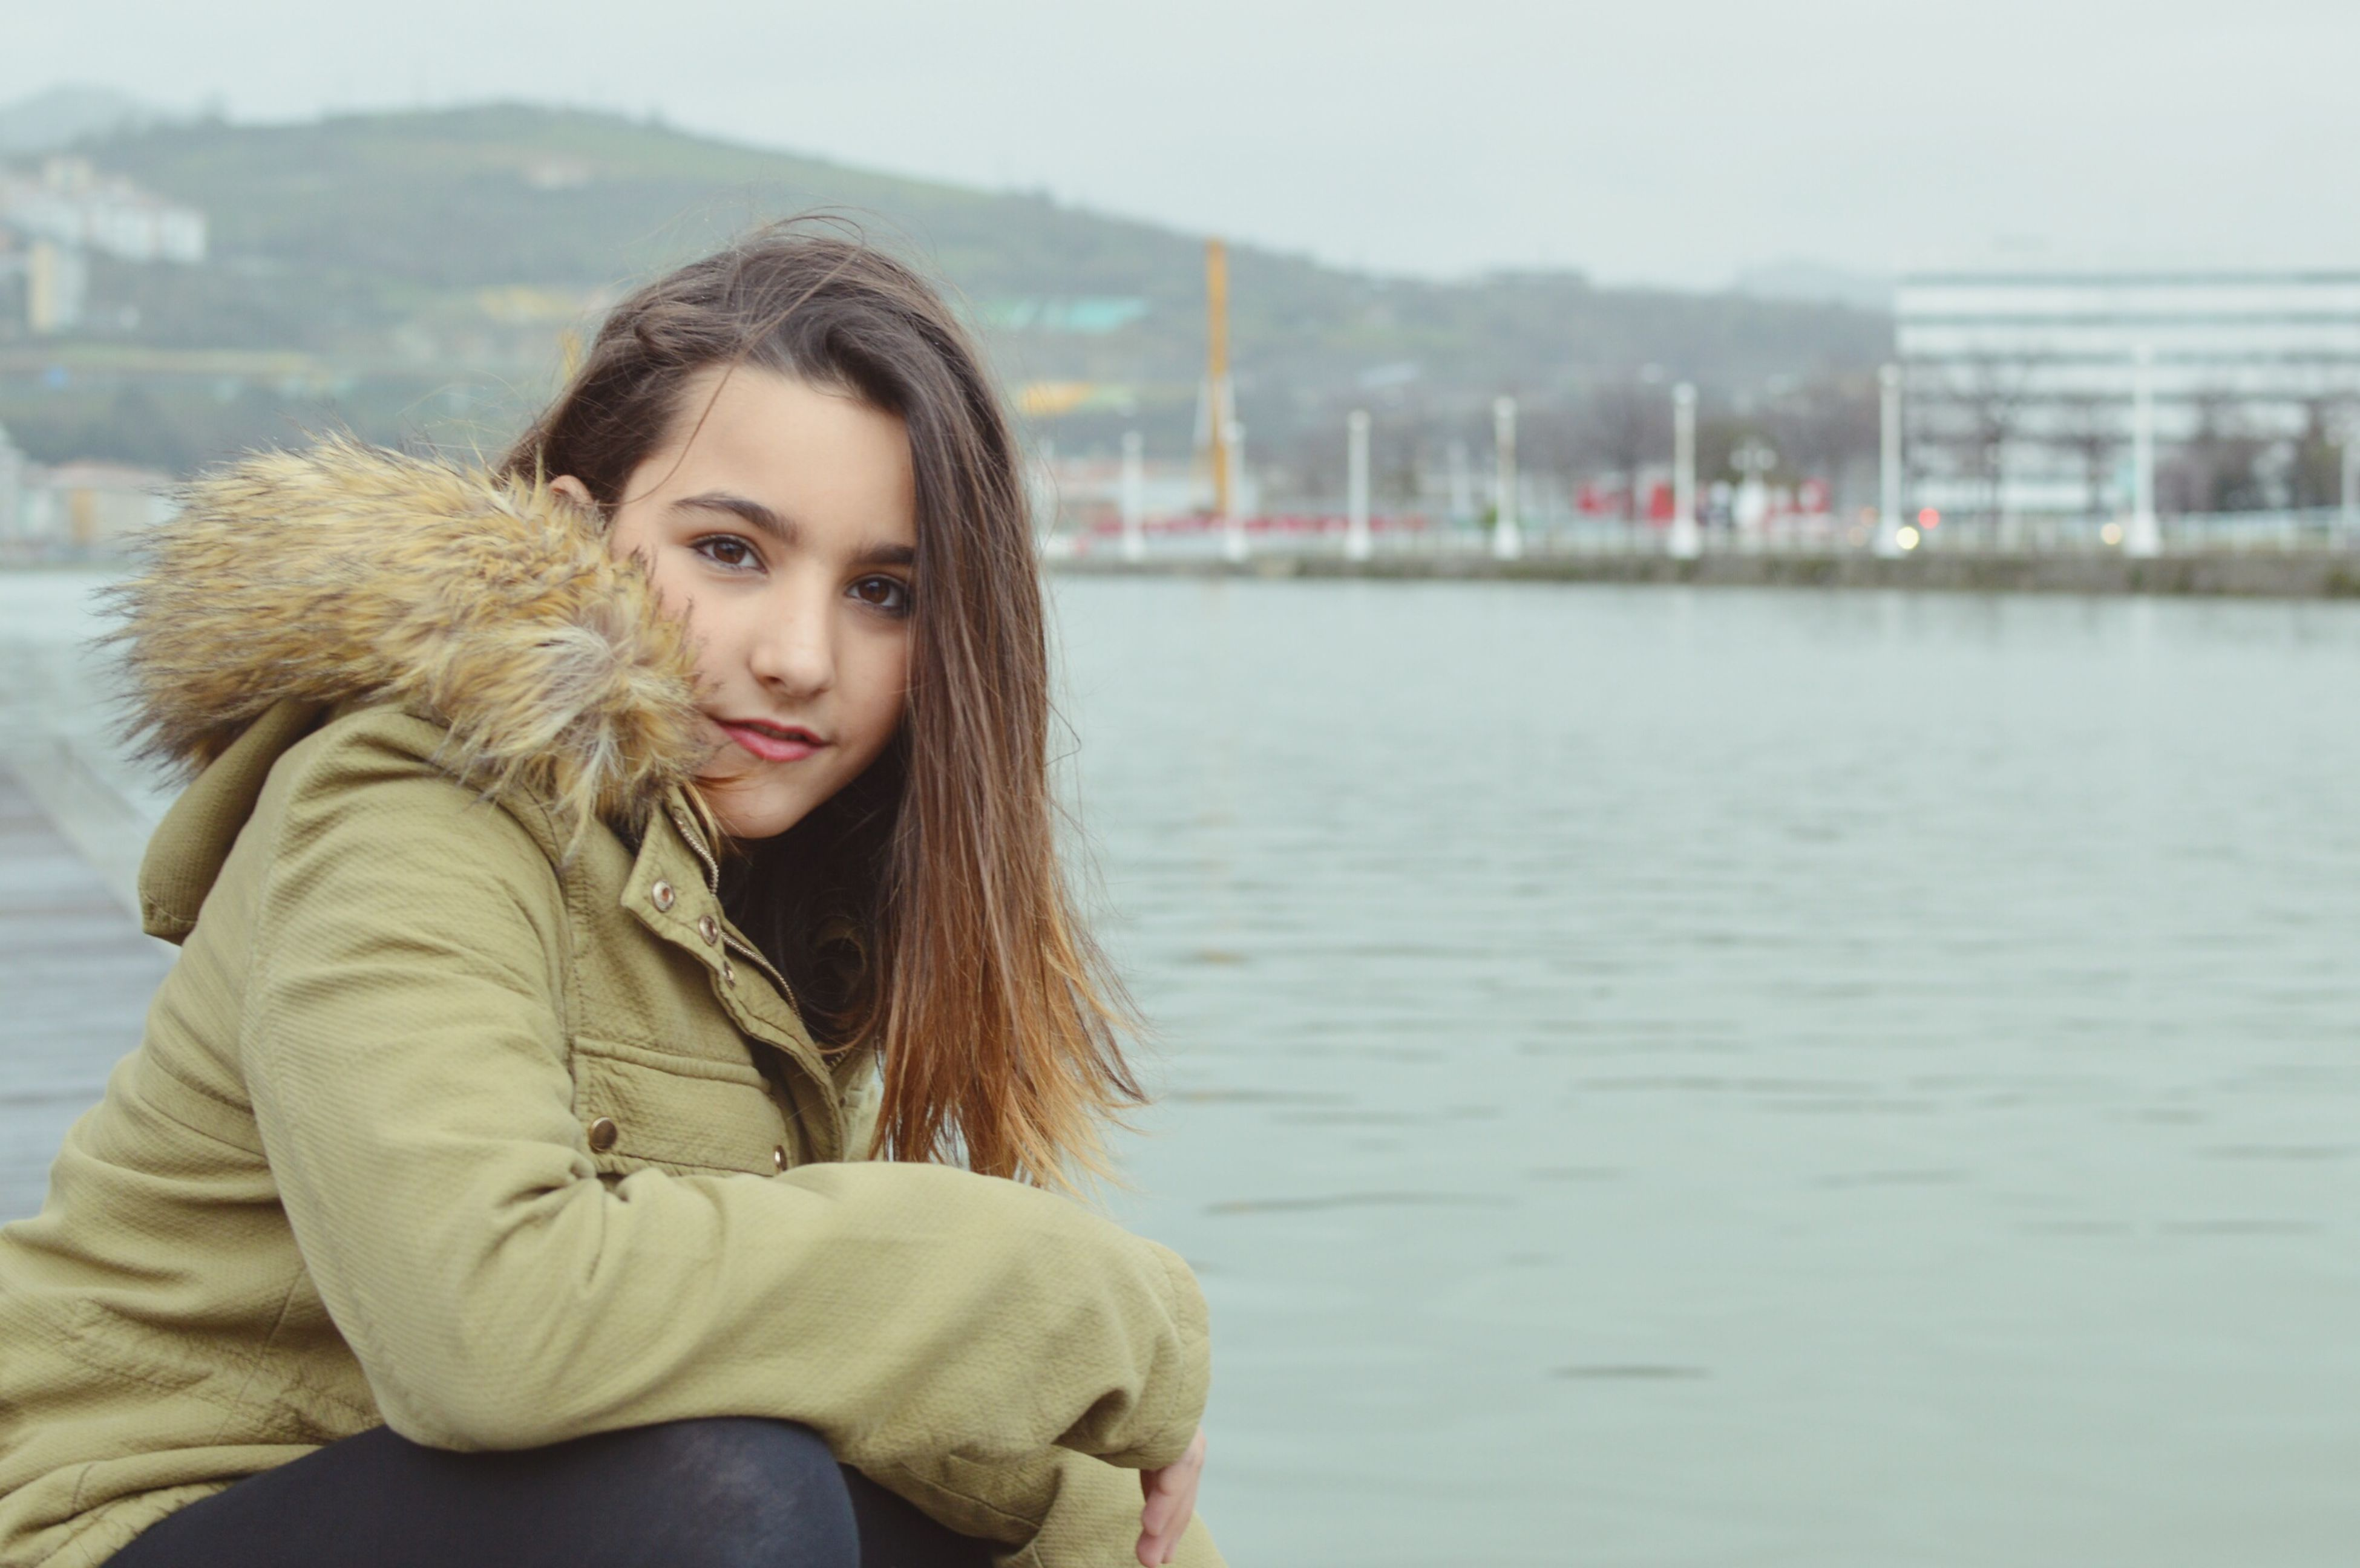 young adult, person, water, lifestyles, leisure activity, long hair, young women, waist up, casual clothing, focus on foreground, three quarter length, smiling, lake, brown hair, blond hair, river, standing, portrait